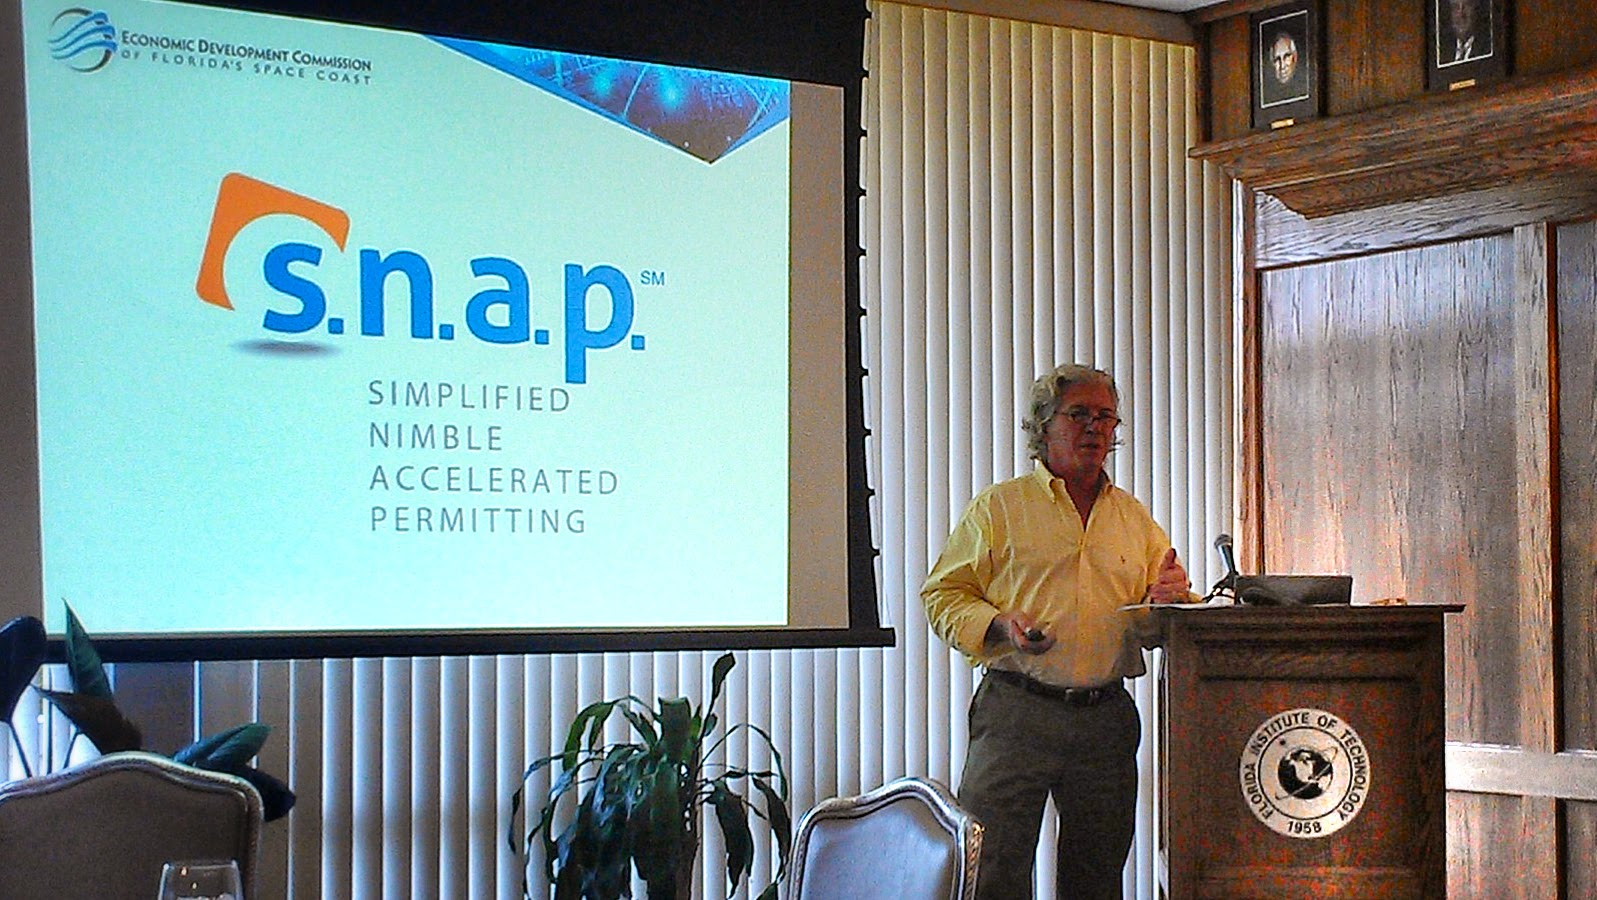 Mr. Luke Miorelli, P.E. of the Economic Development Commission (EDC) of Space Coast presents the S.N.A.P. permitting process to AIA Architects.